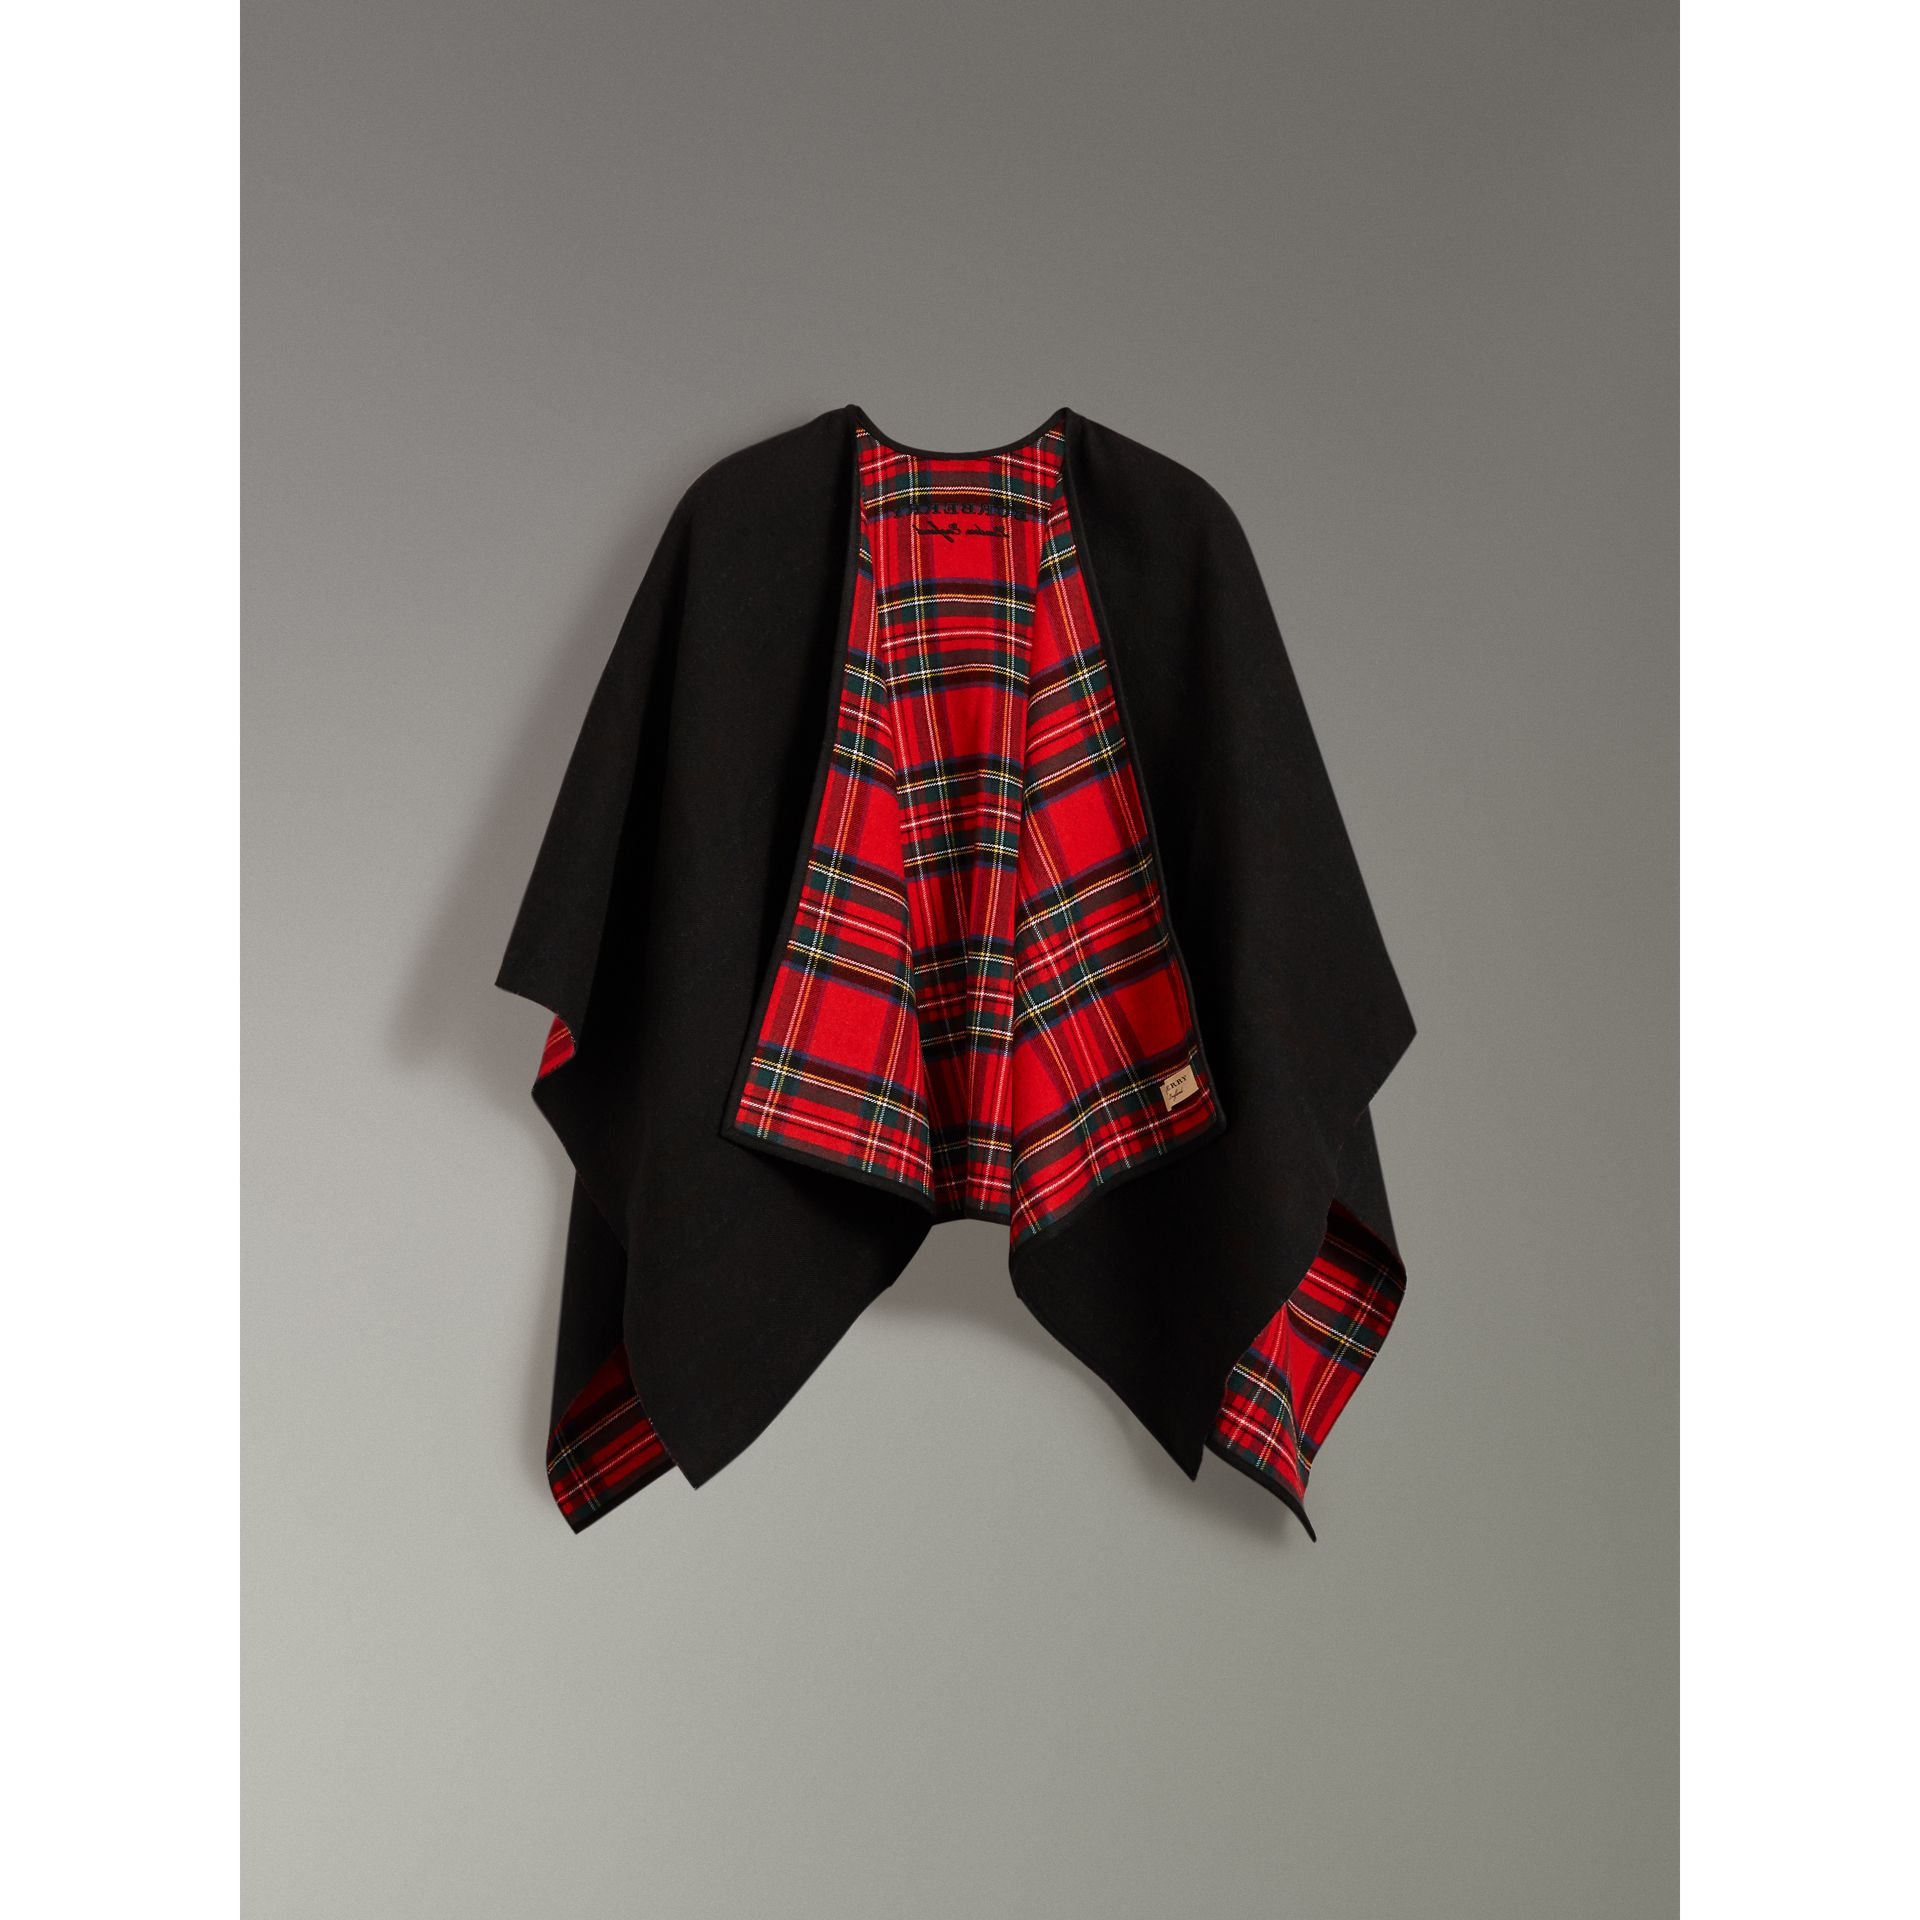 Poncho court réversible en laine tartan (Noir) | Burberry - photo de la galerie 3